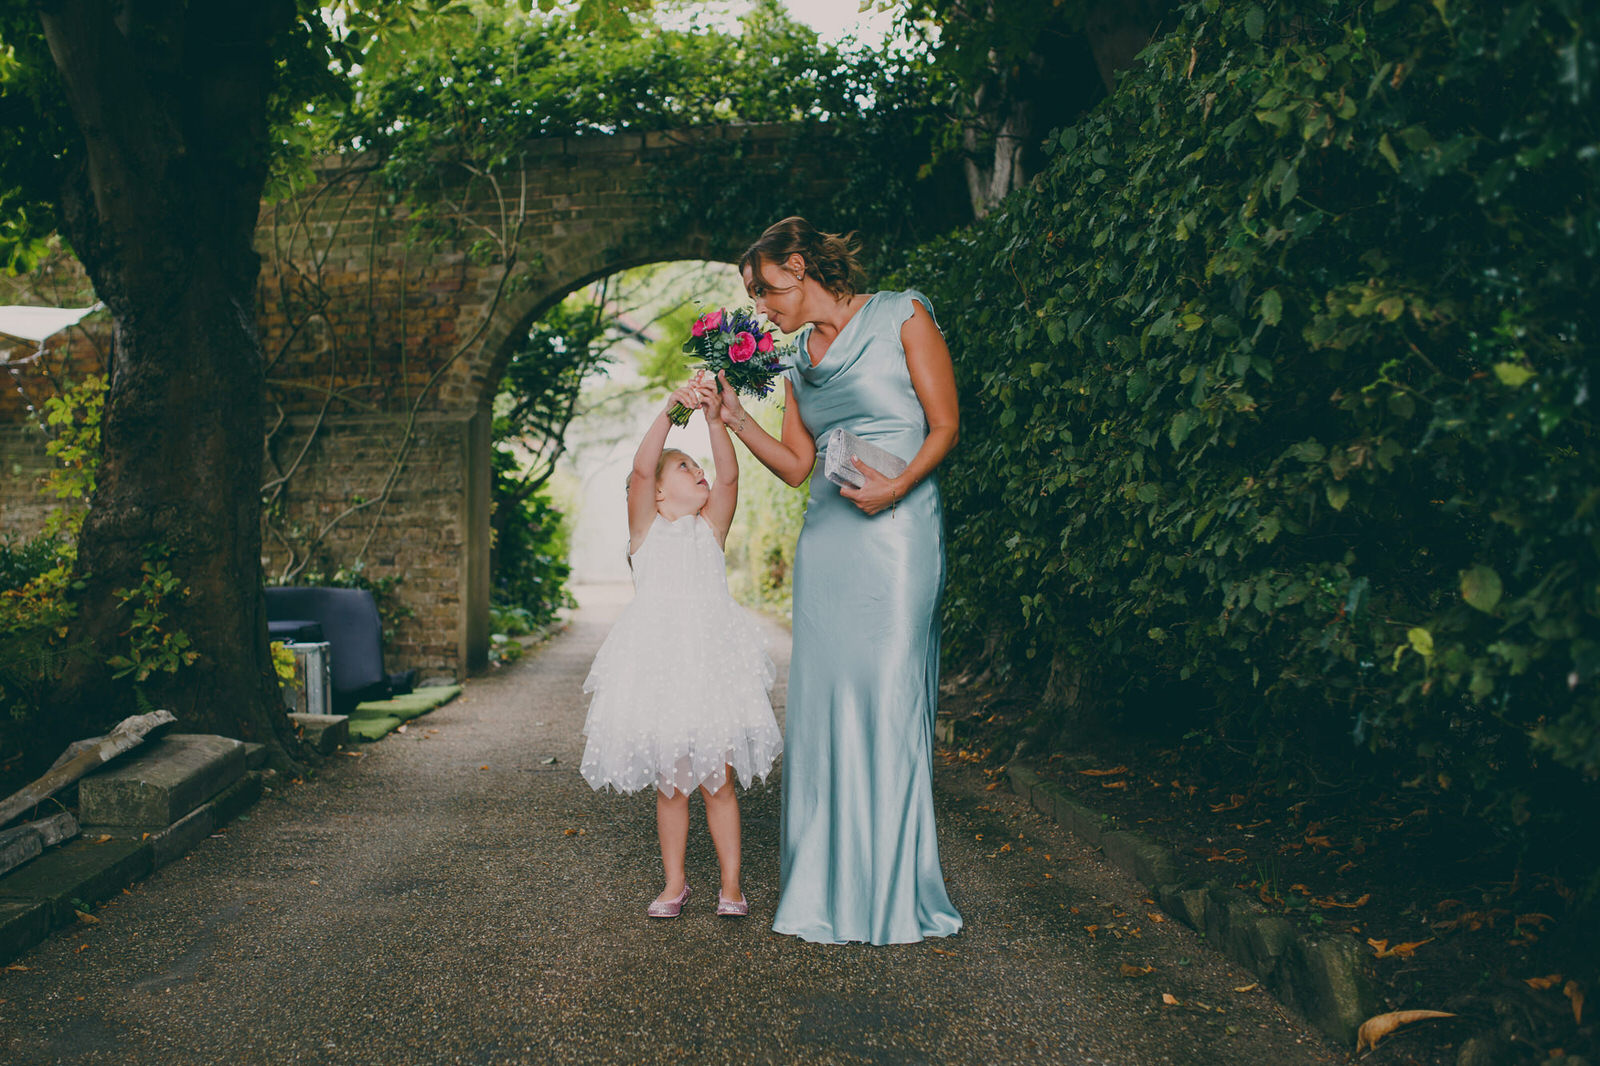 bridesmaid flowergirl mint Ghost dress London wedding photographer.jpg